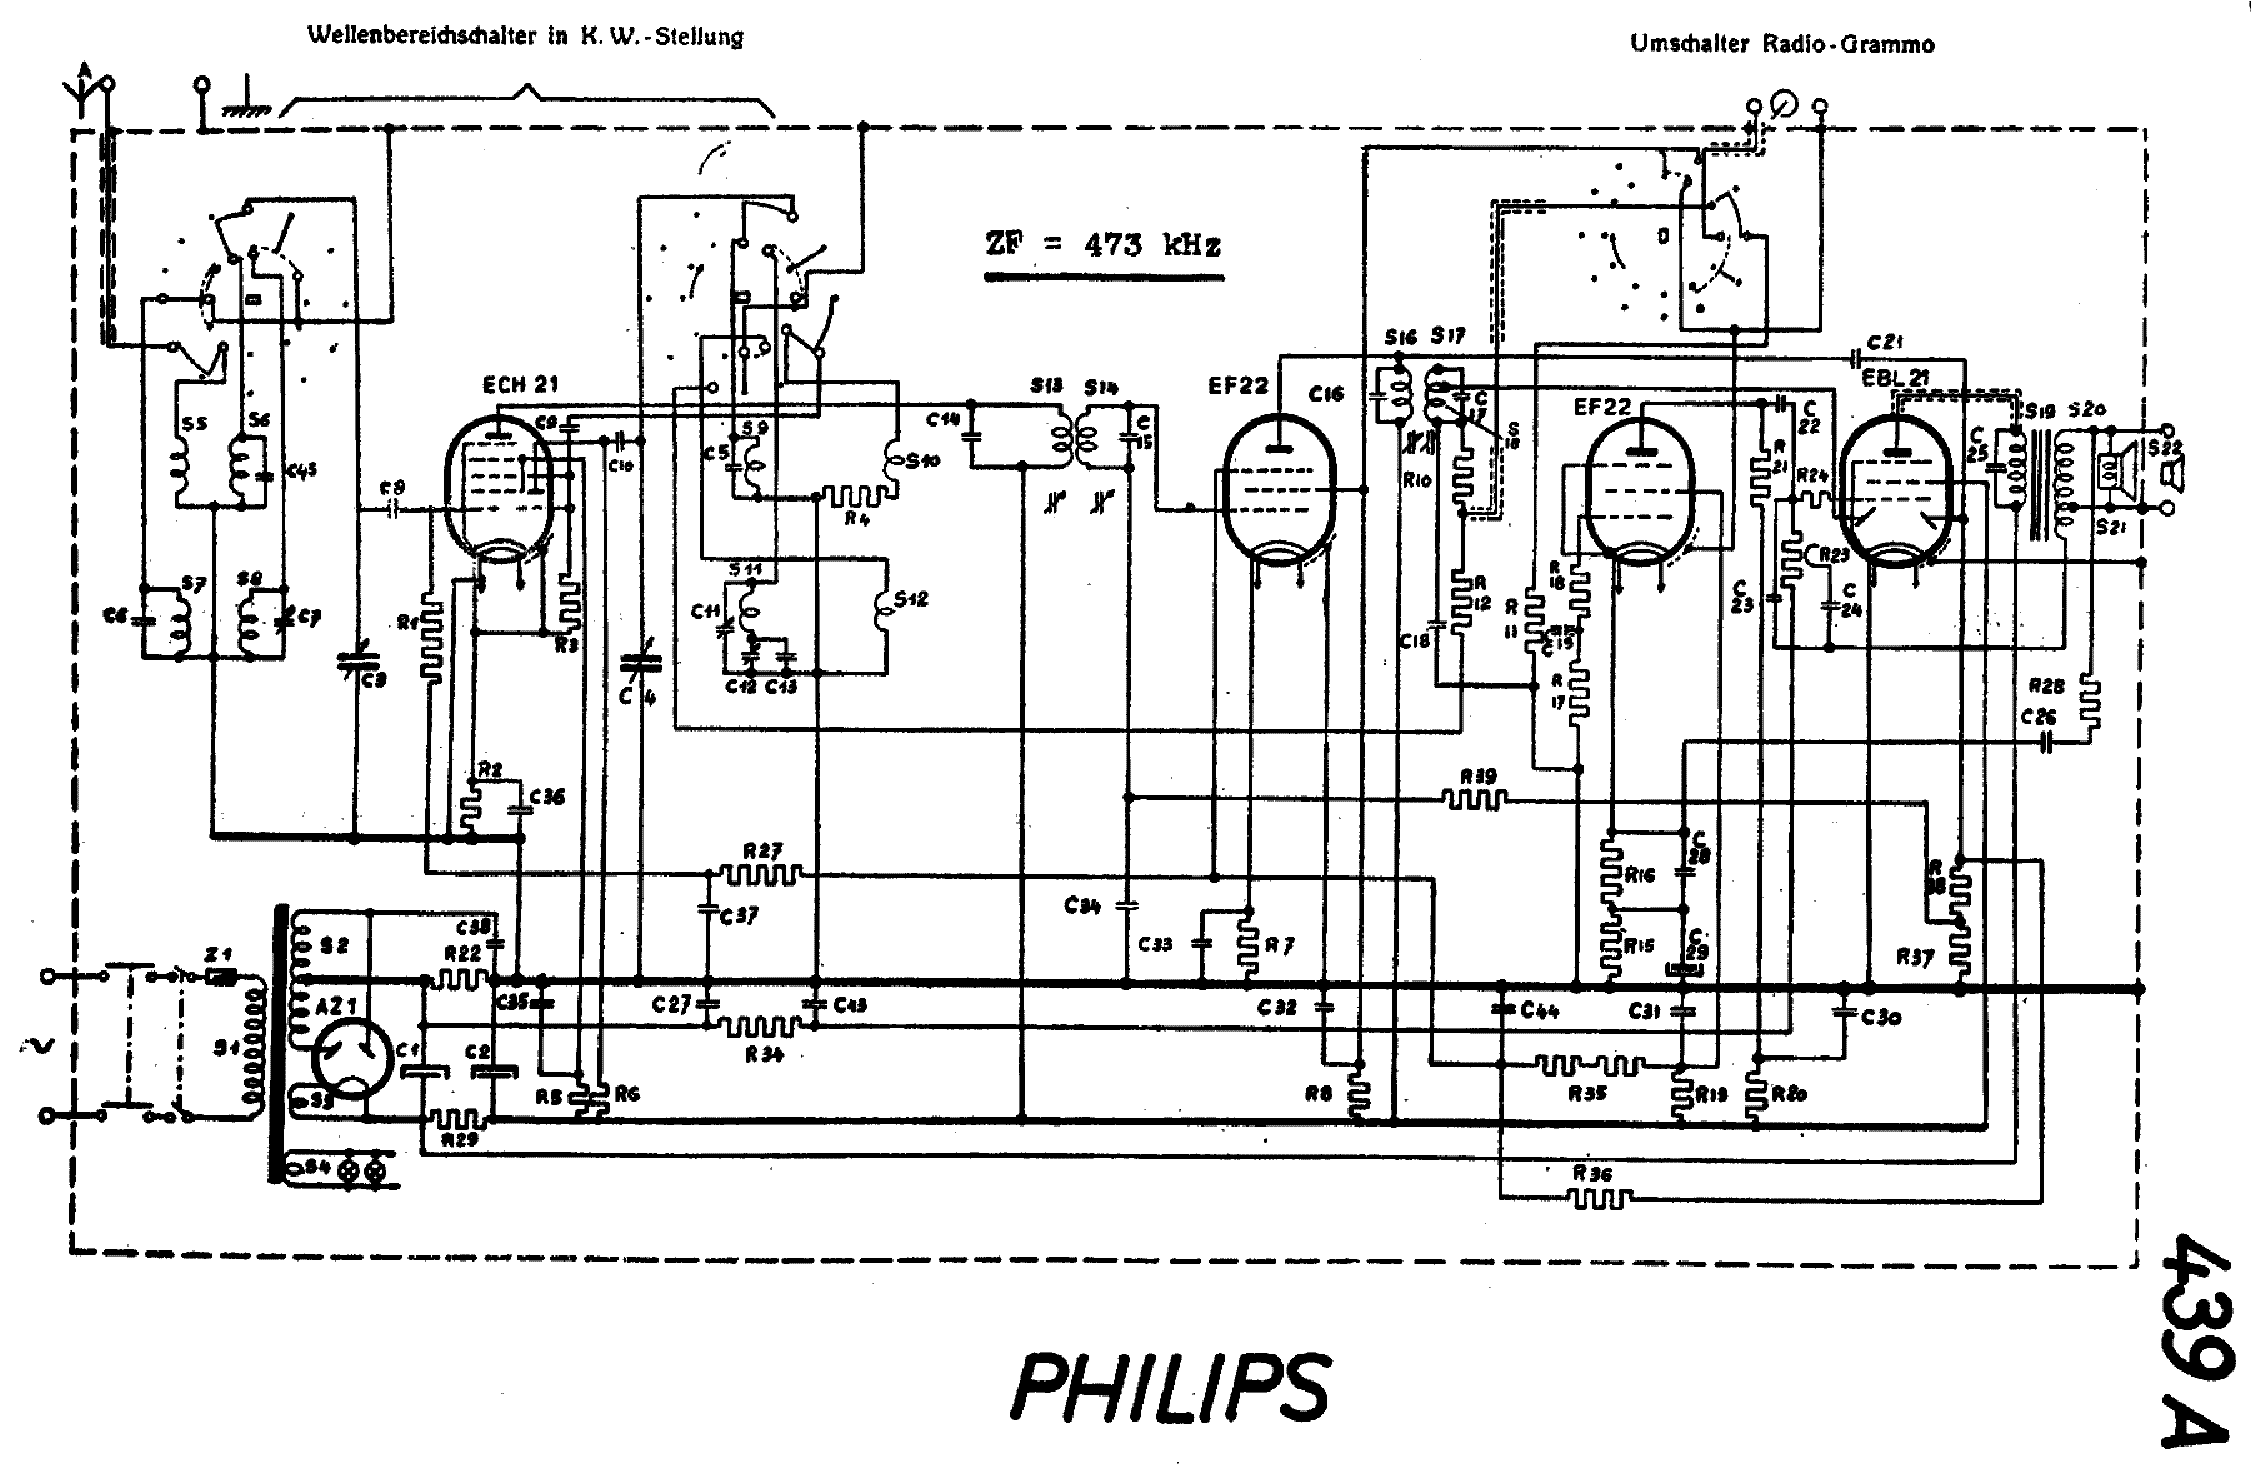 PHILIPS 439A SCH Service Manual download, schematics